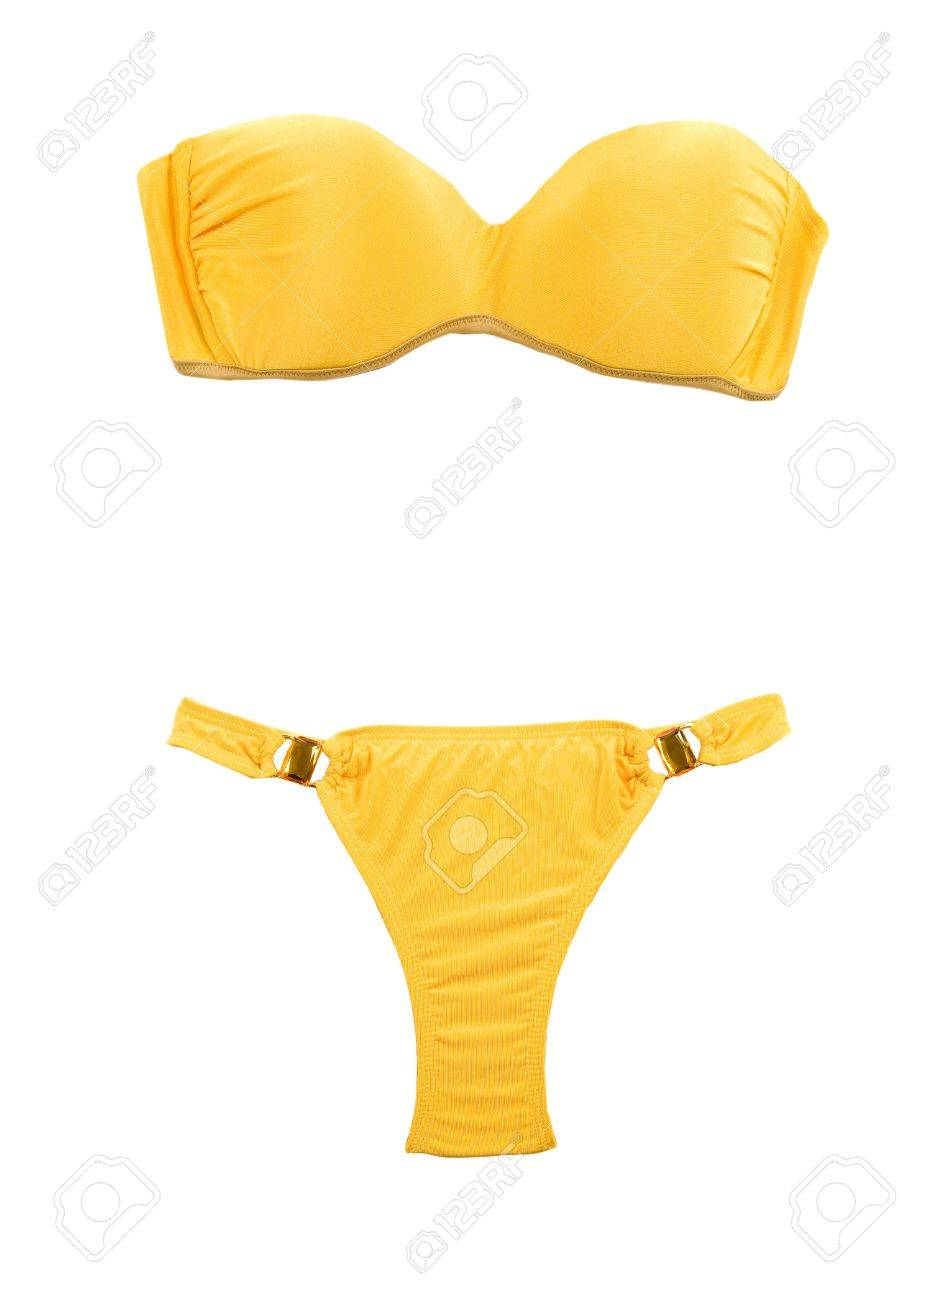 0d4cc8b49ebaf Yellow bandeau bikini with two big gems isolated on white background  Clipping path included Stock Photo